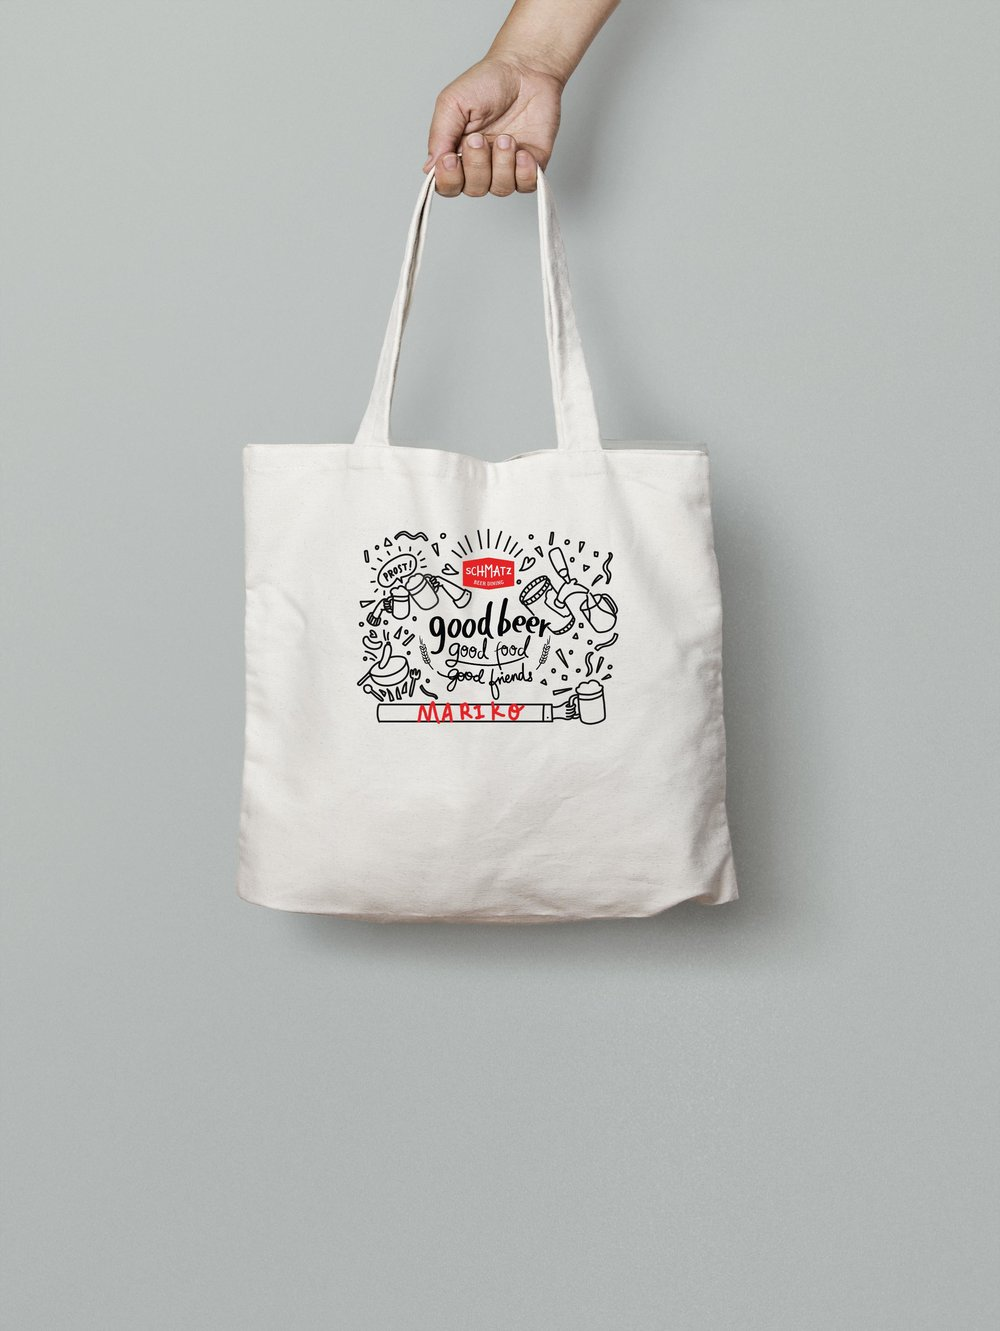 CanvasToteBagMockUp2-personalised.jpg